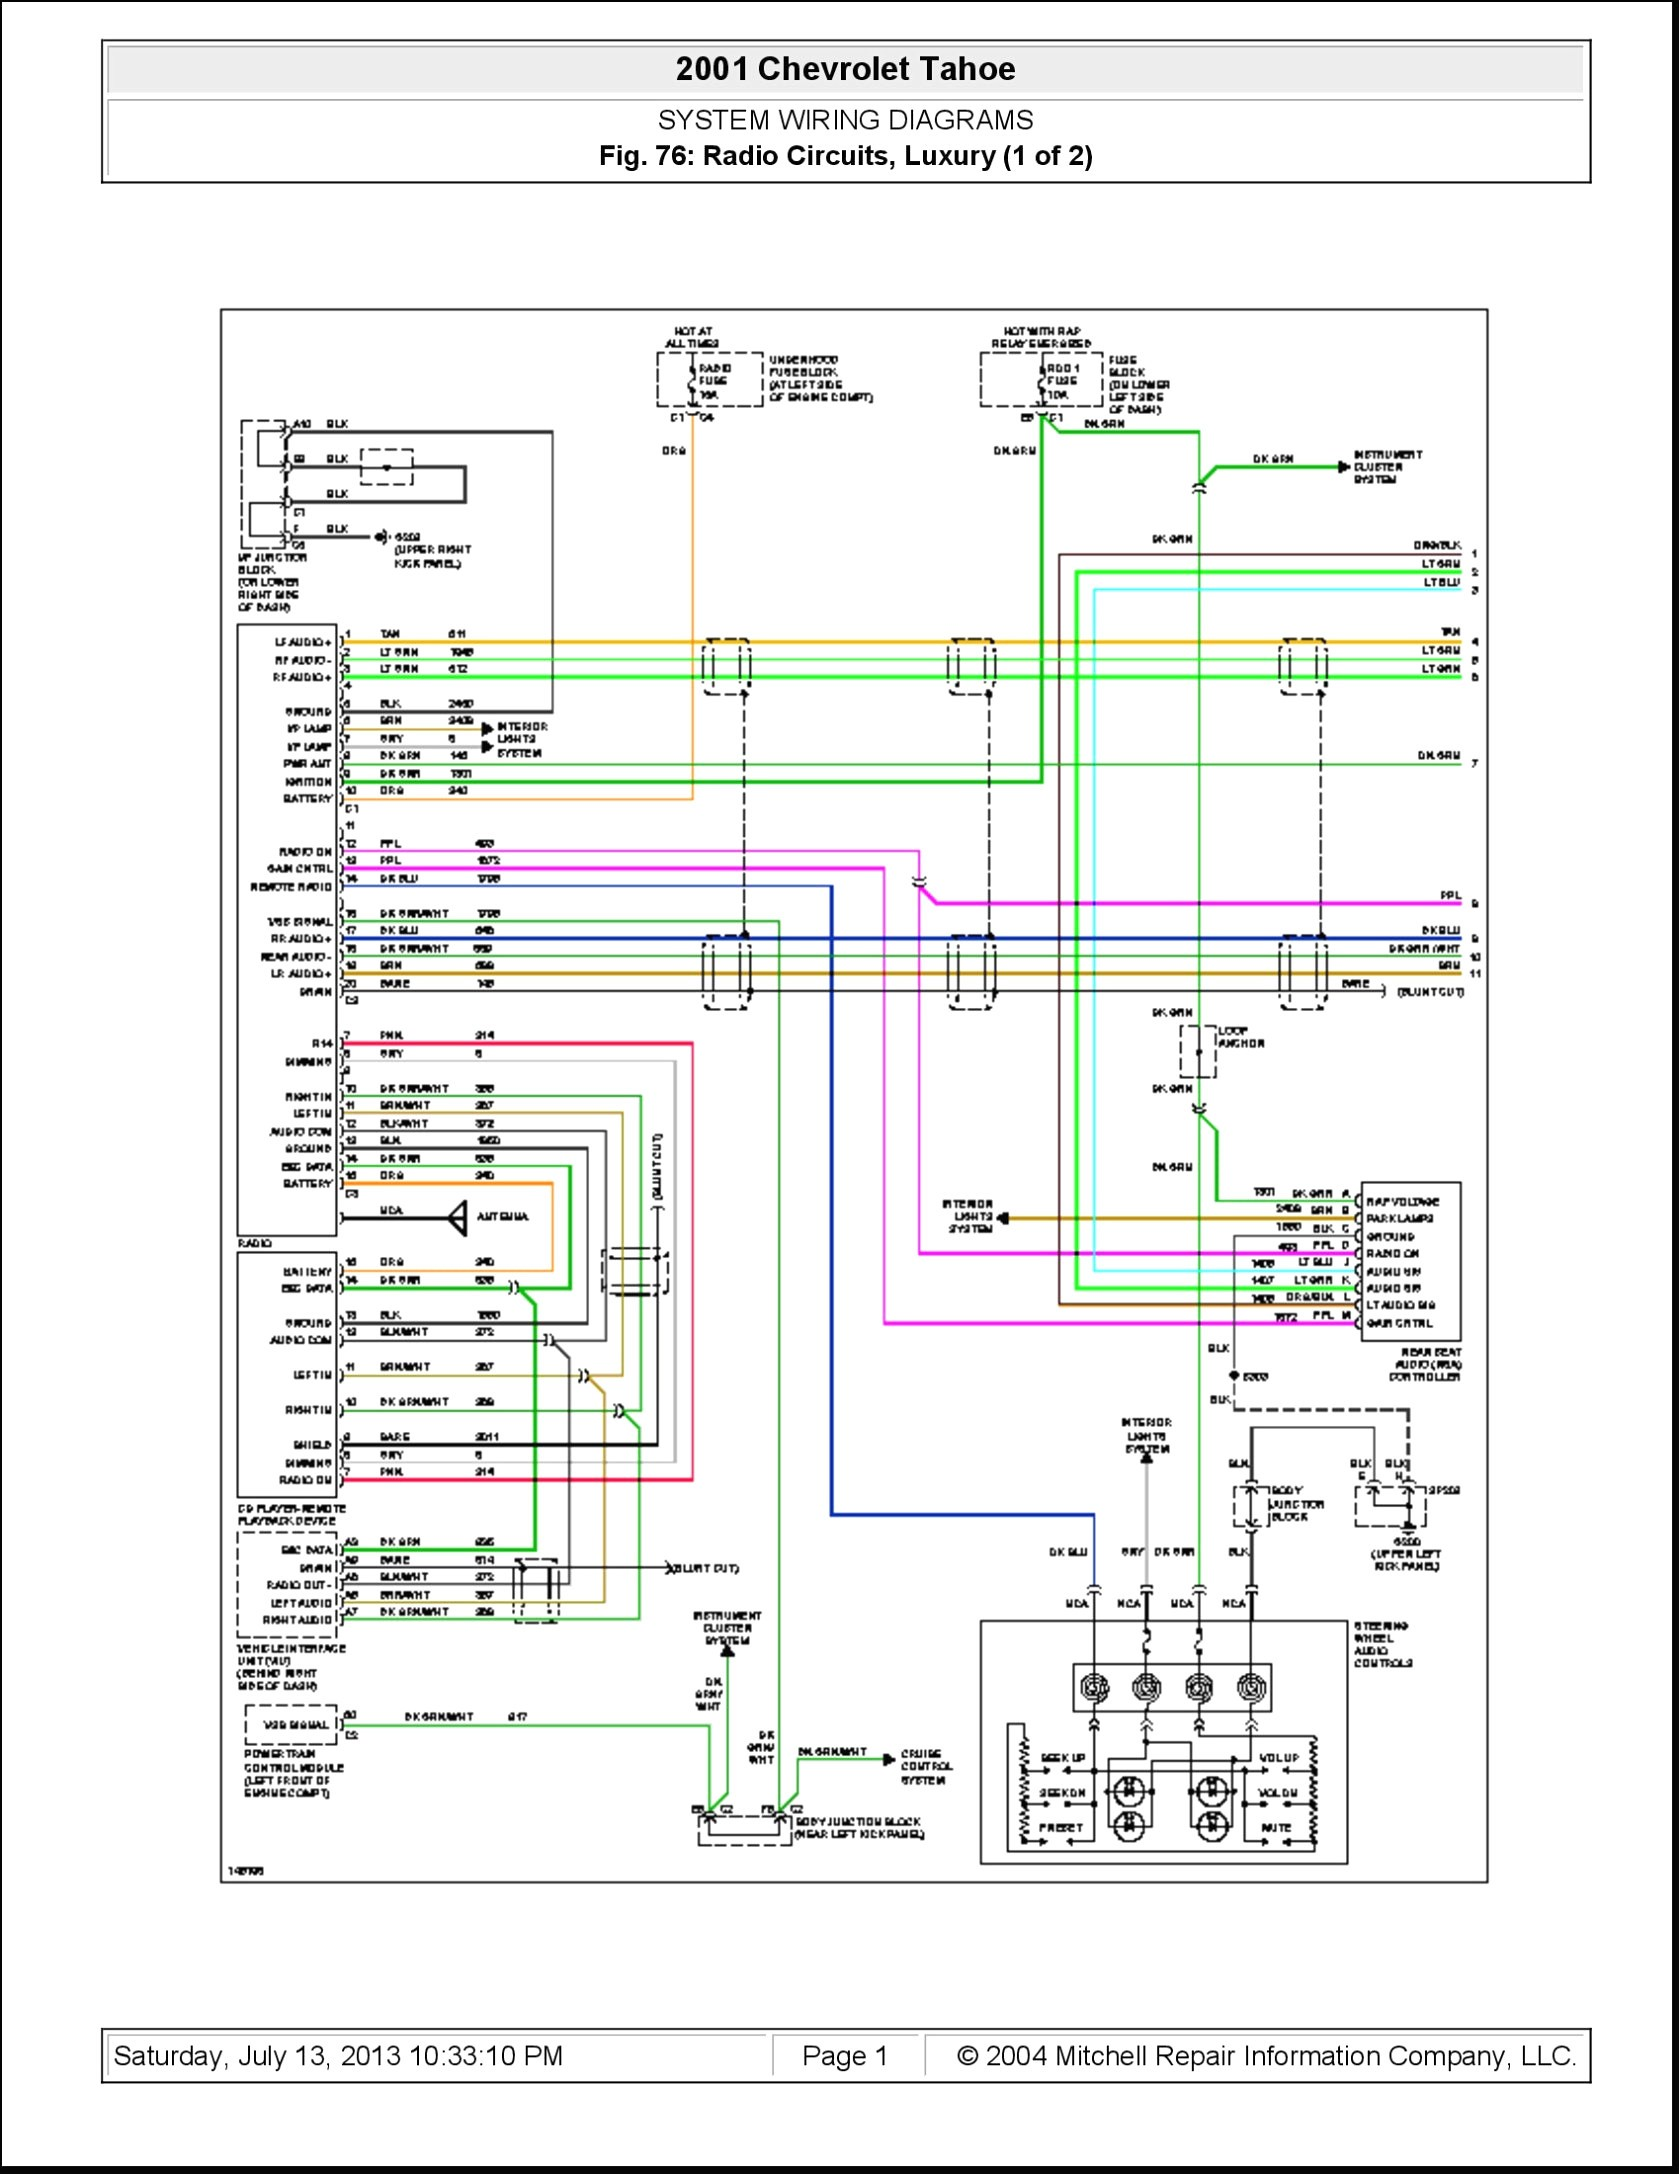 2001 Chevy Impala Radio Wiring Diagram 1966 Part 9 Circuit Drawings Are Useful When Working On